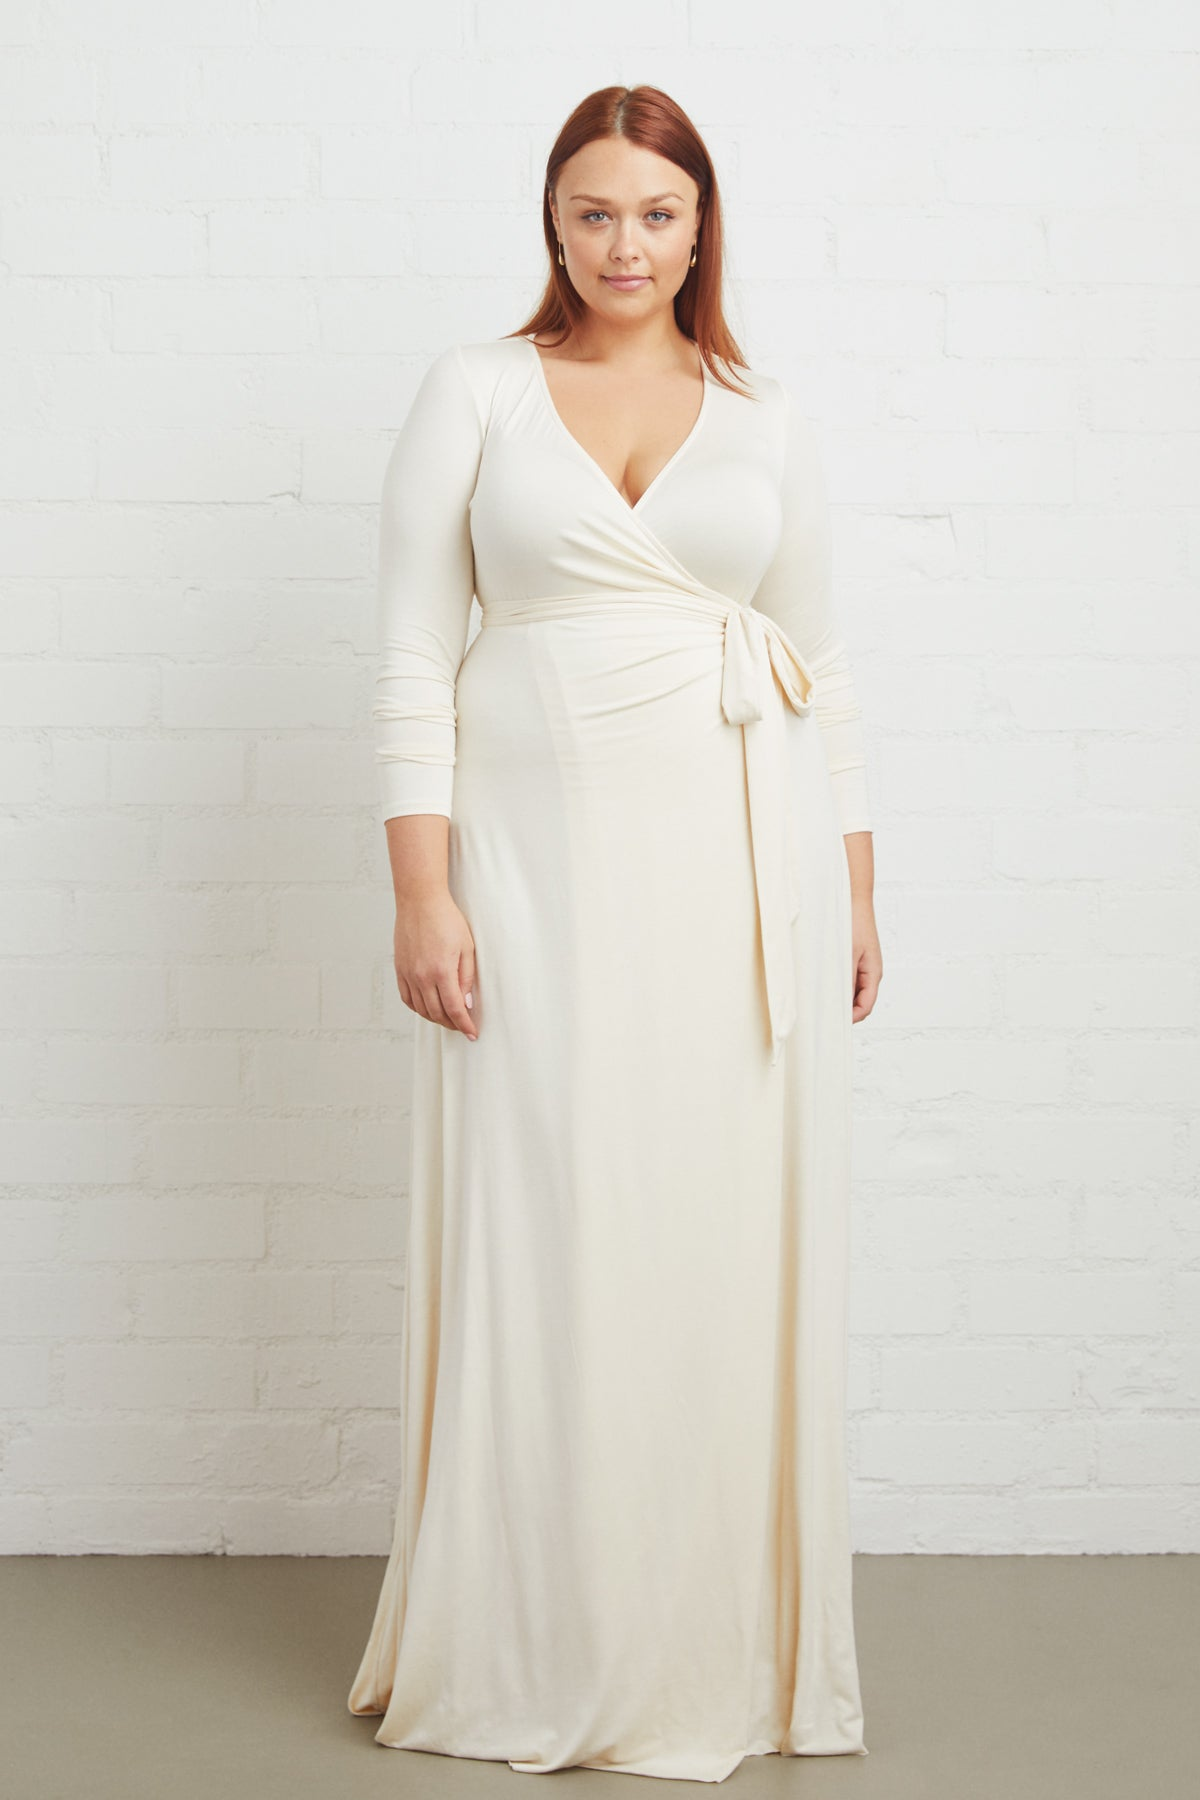 Harlow Wrap Dress - Cream, Plus Size – Rachel Pally